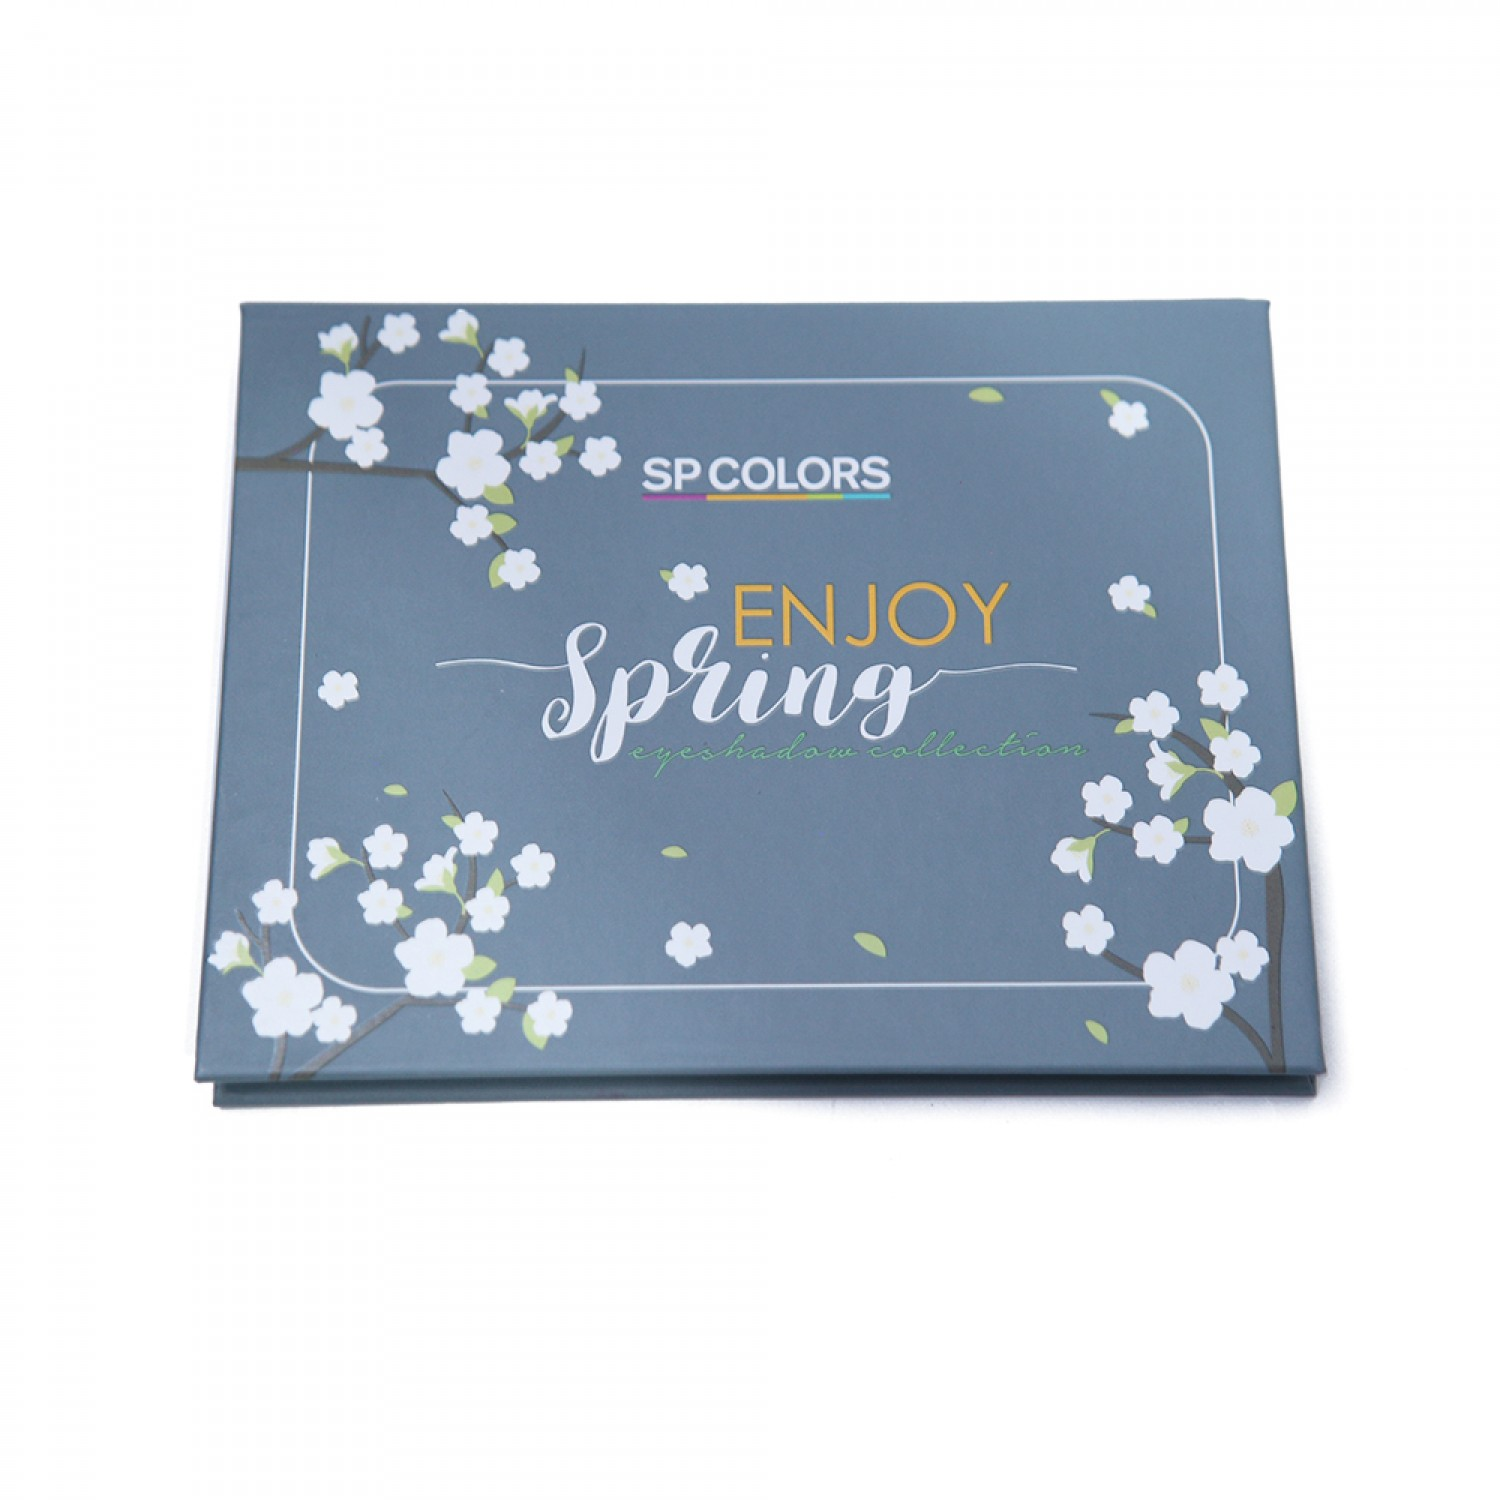 Paleta de Sombras Enjoy Spring SP Colors